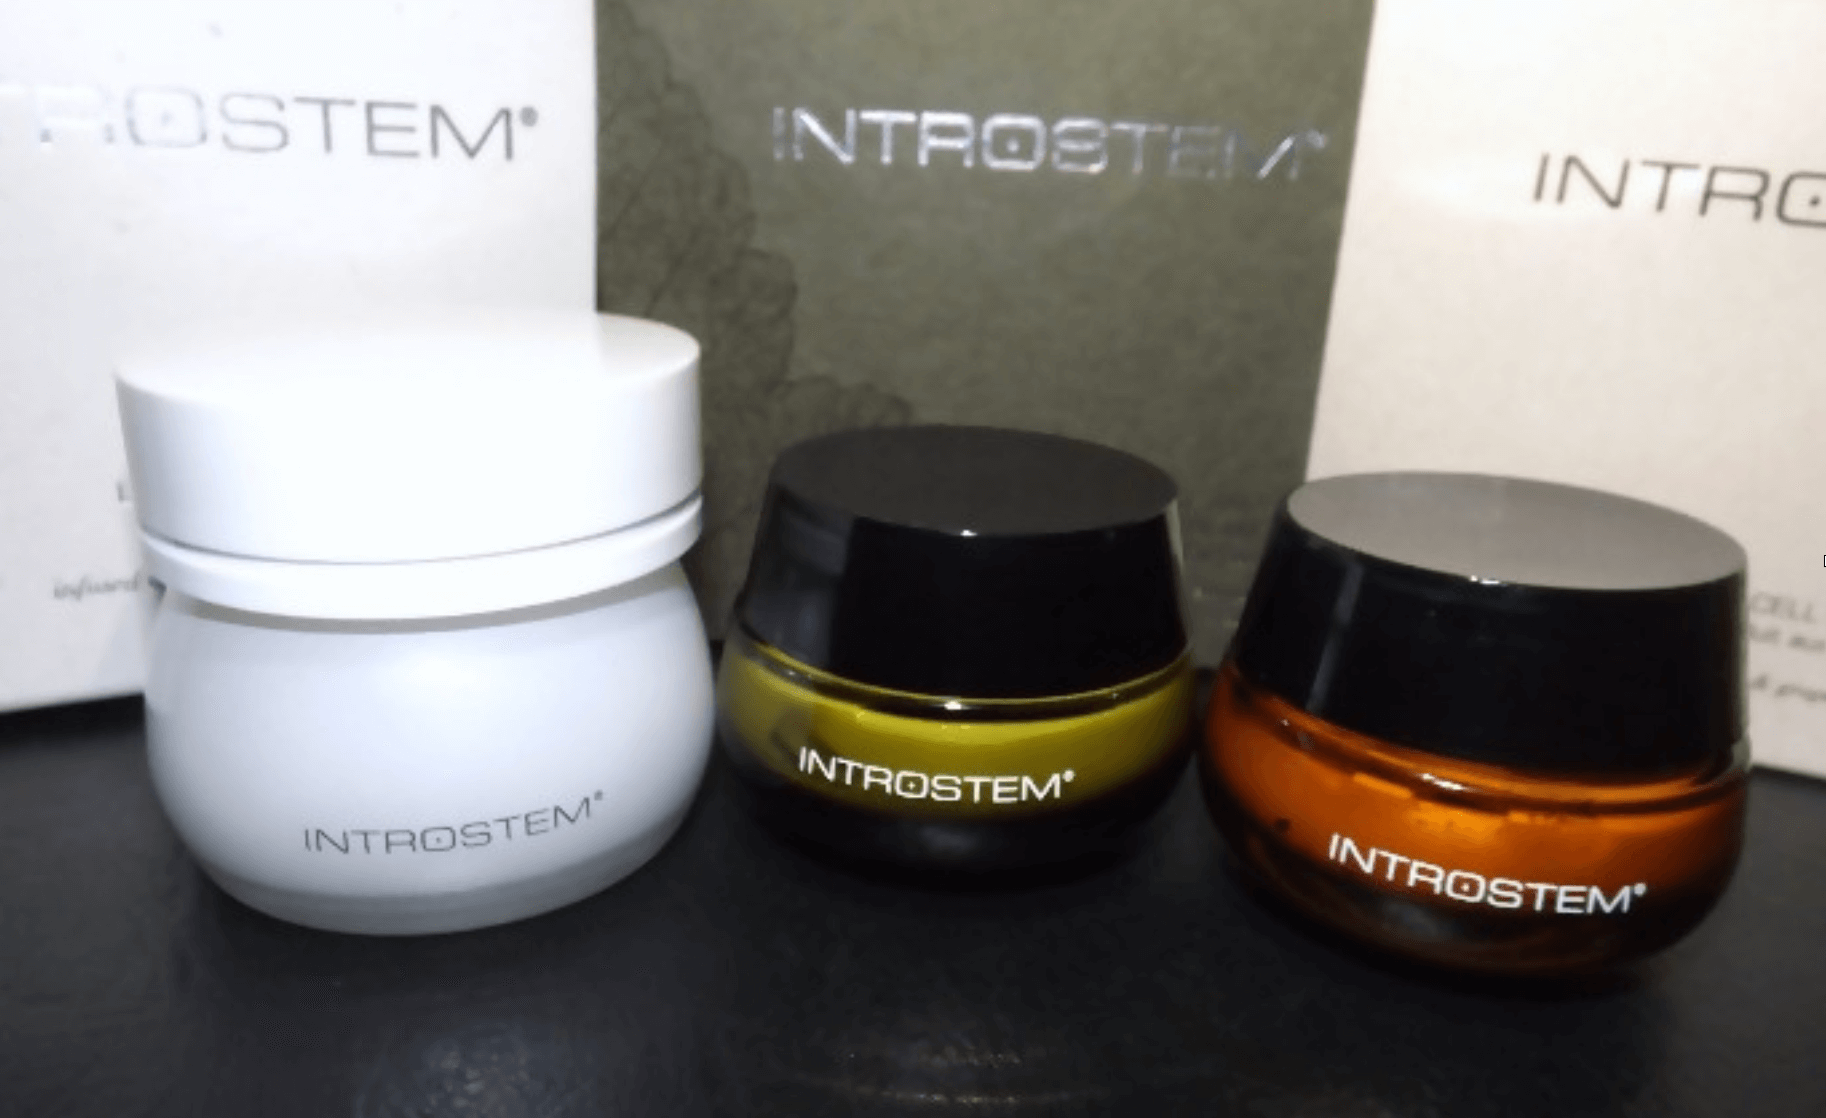 Introstem Skincare Review Is It Worth It The Value Place